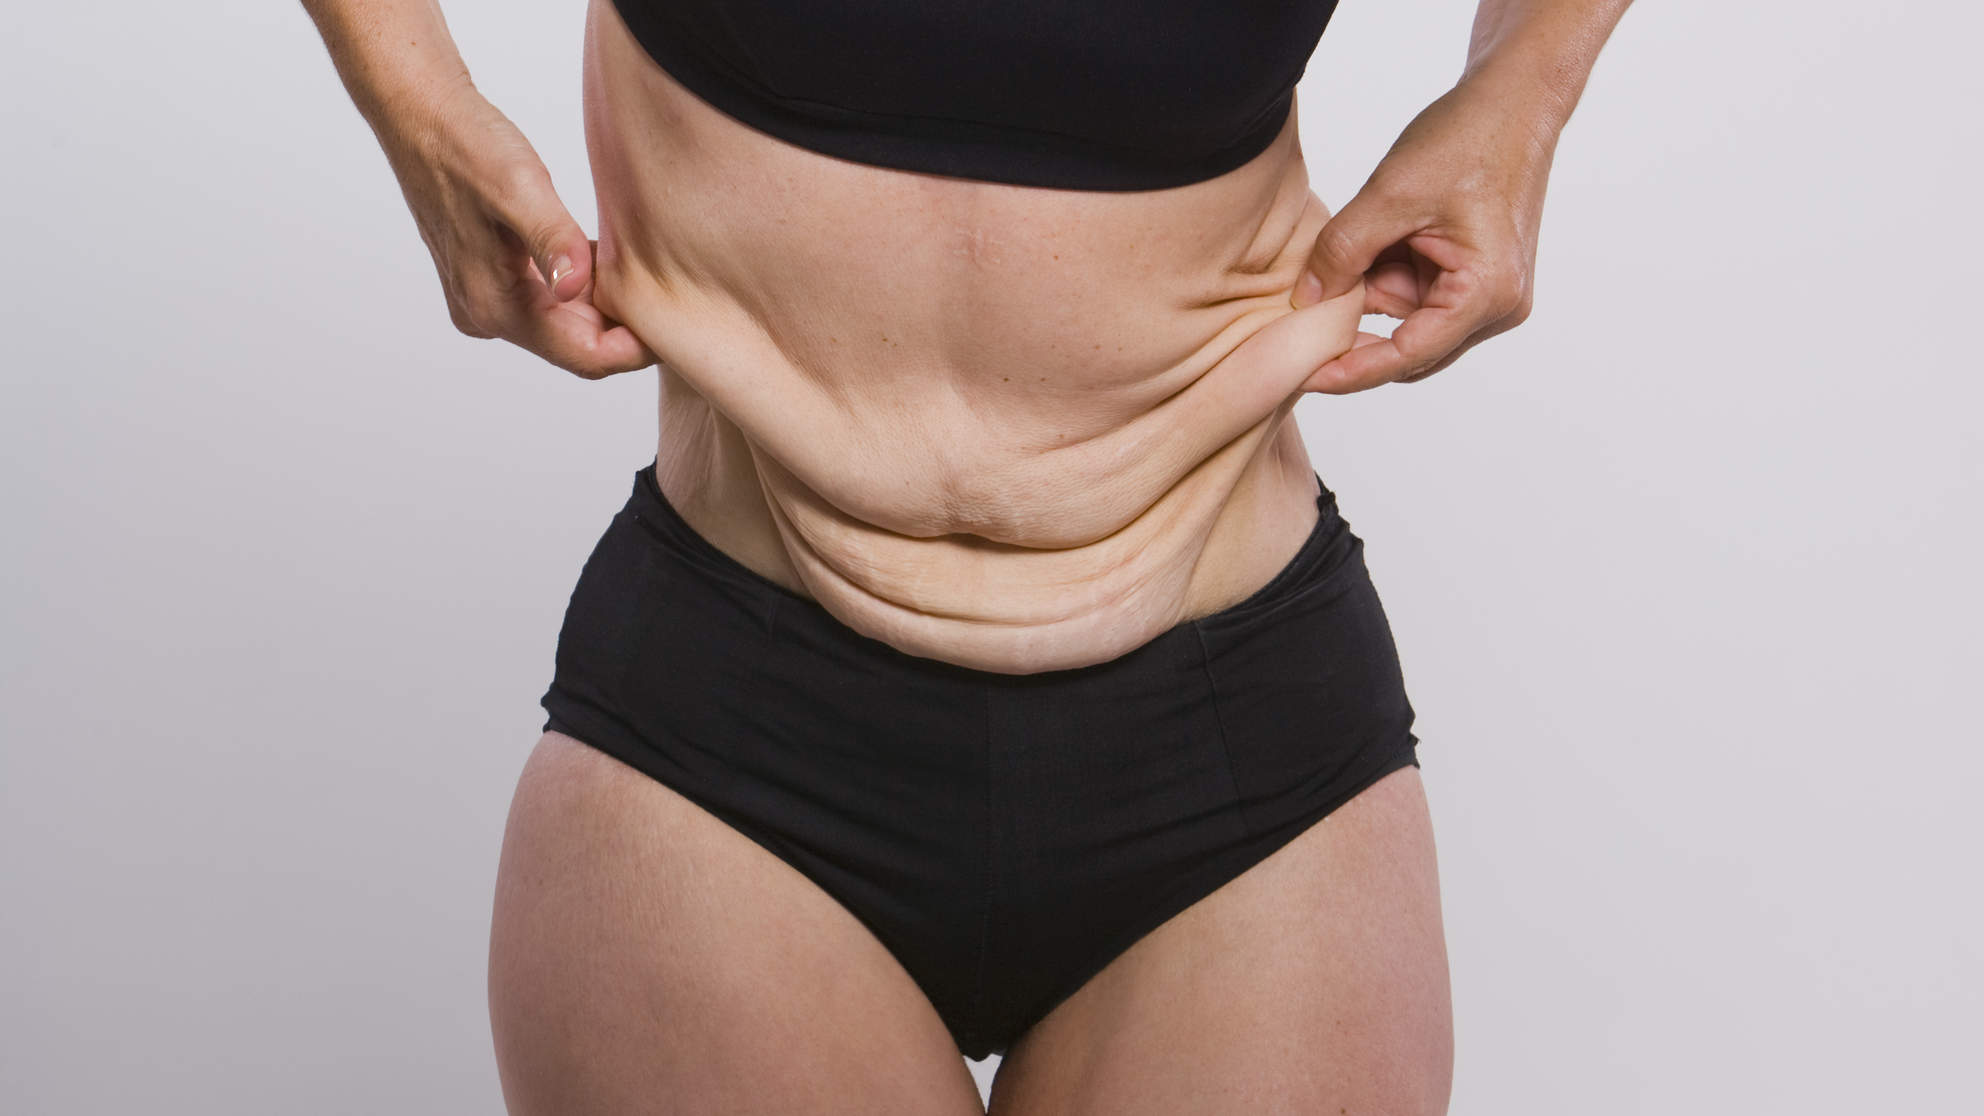 weight-loss-extra-skin-obese